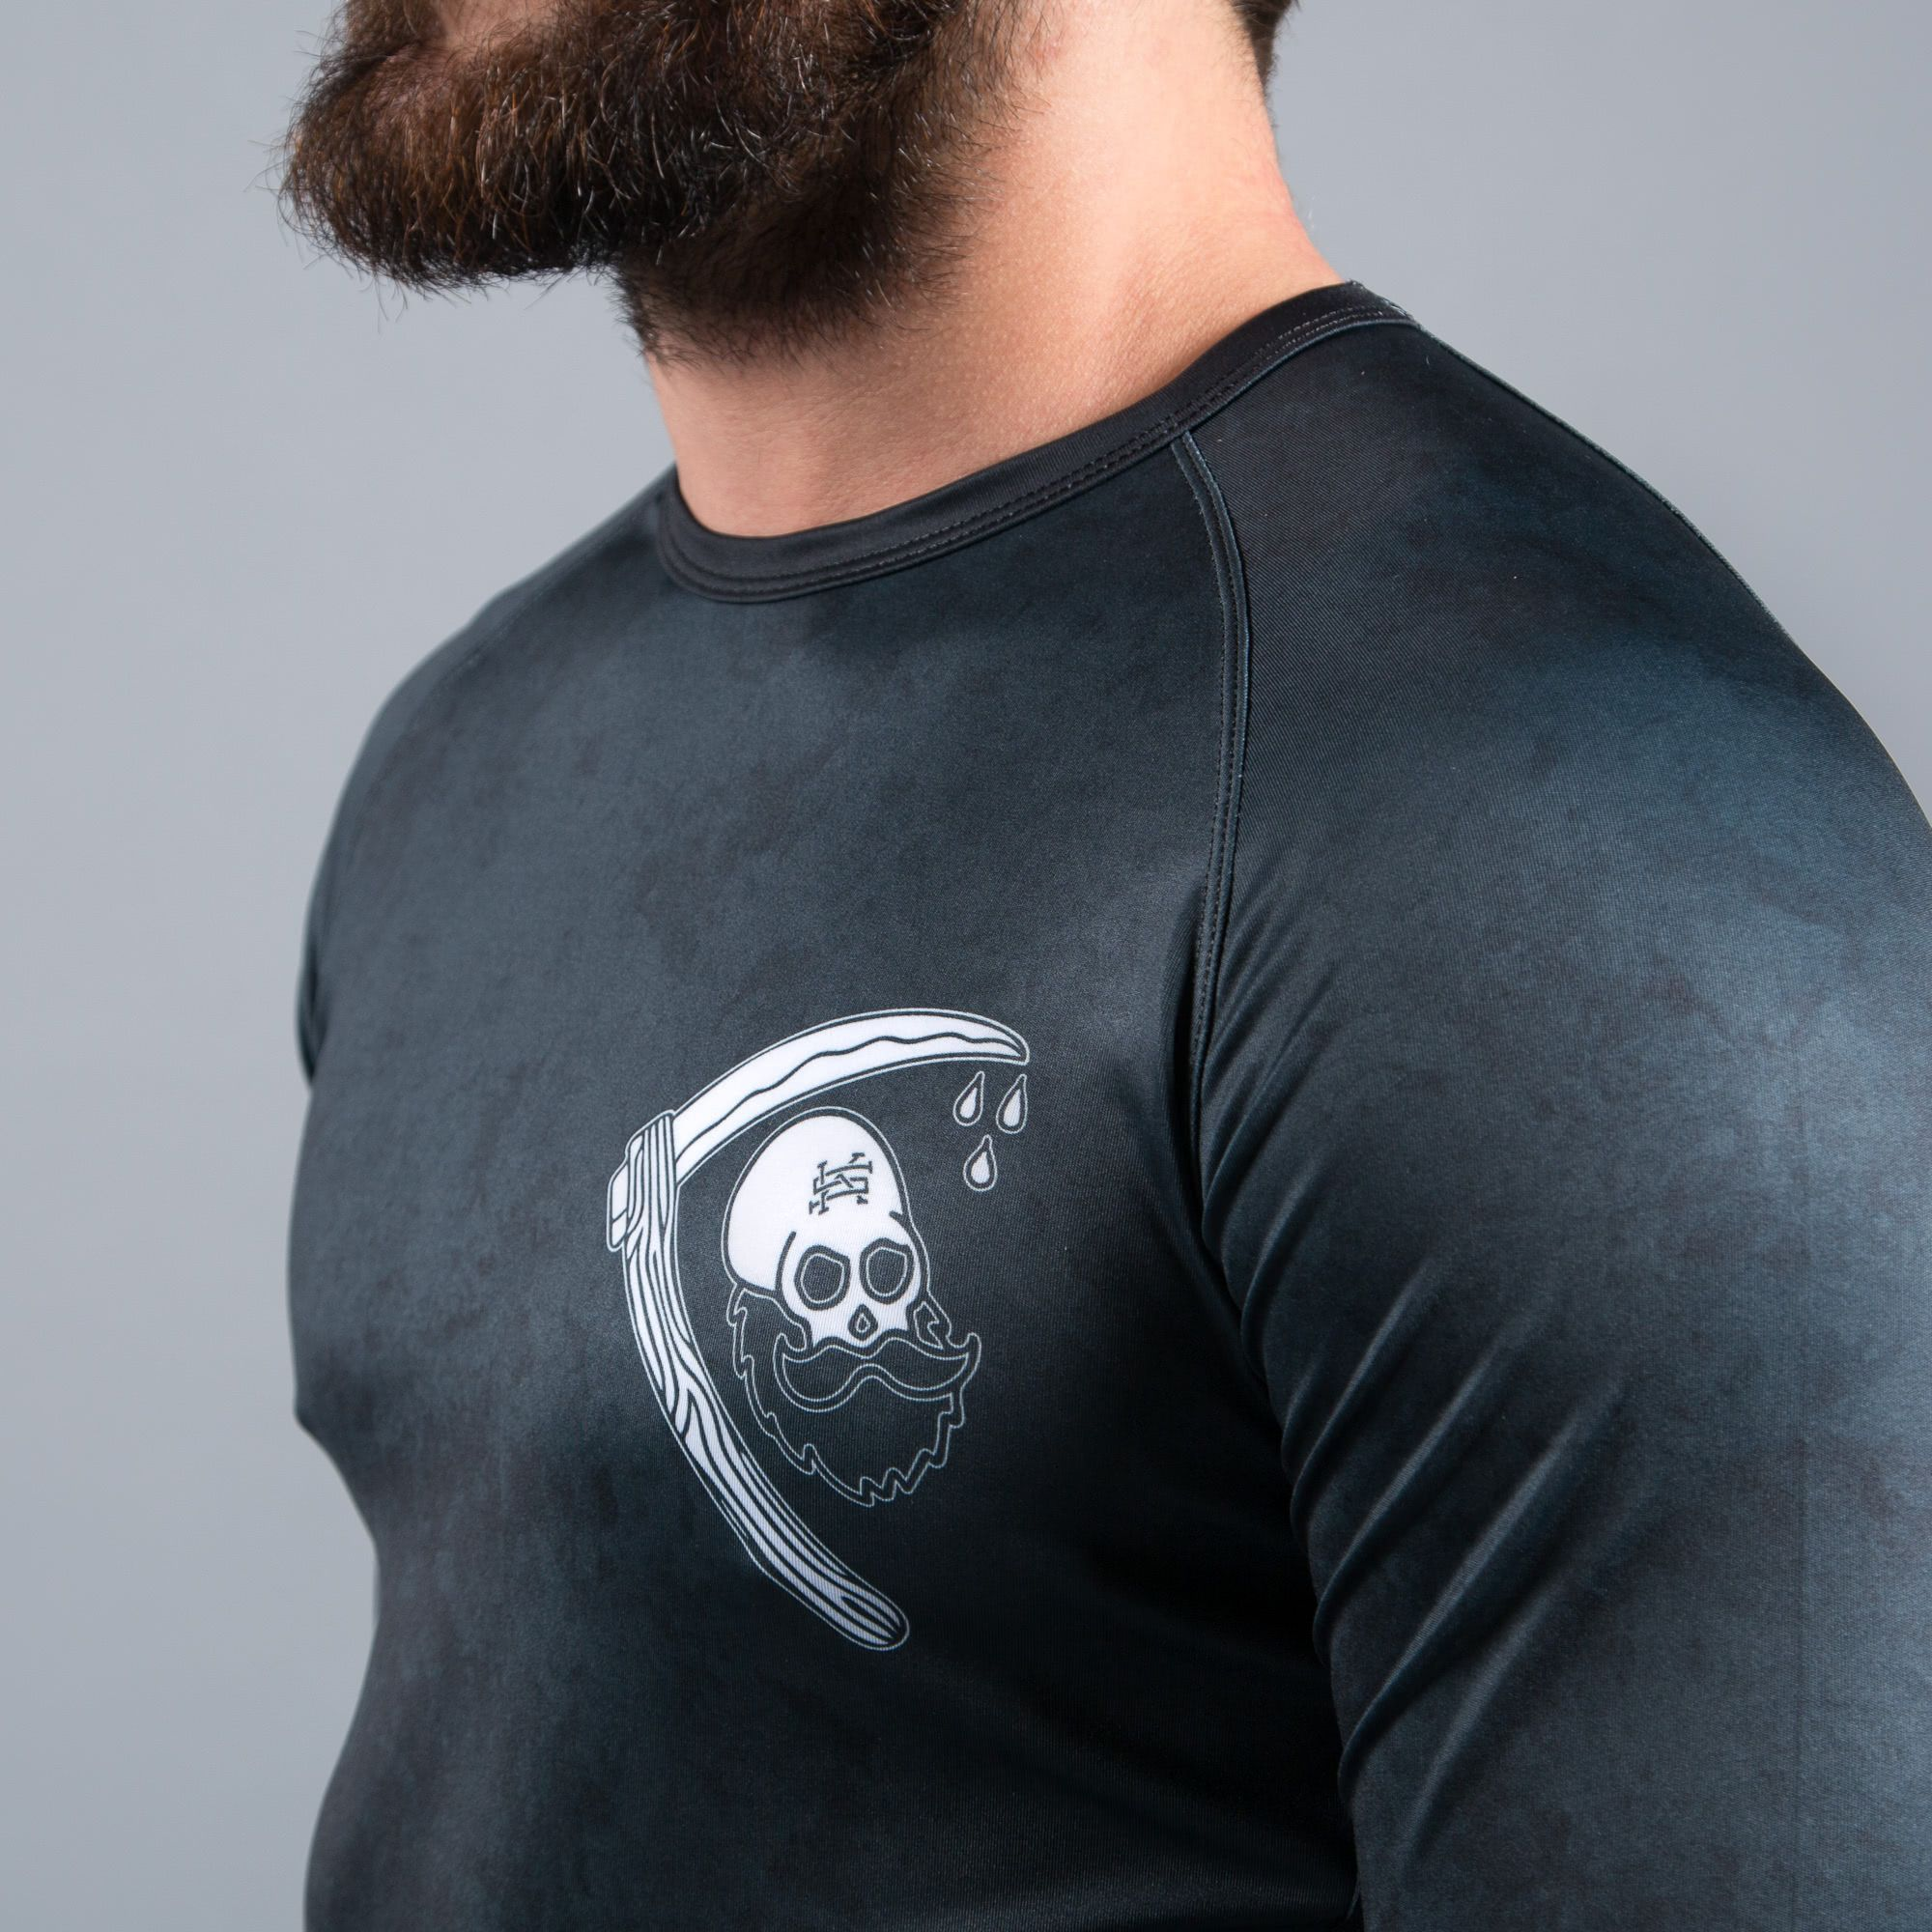 SCRAMBLE STRONG BEARD RASHGUARD